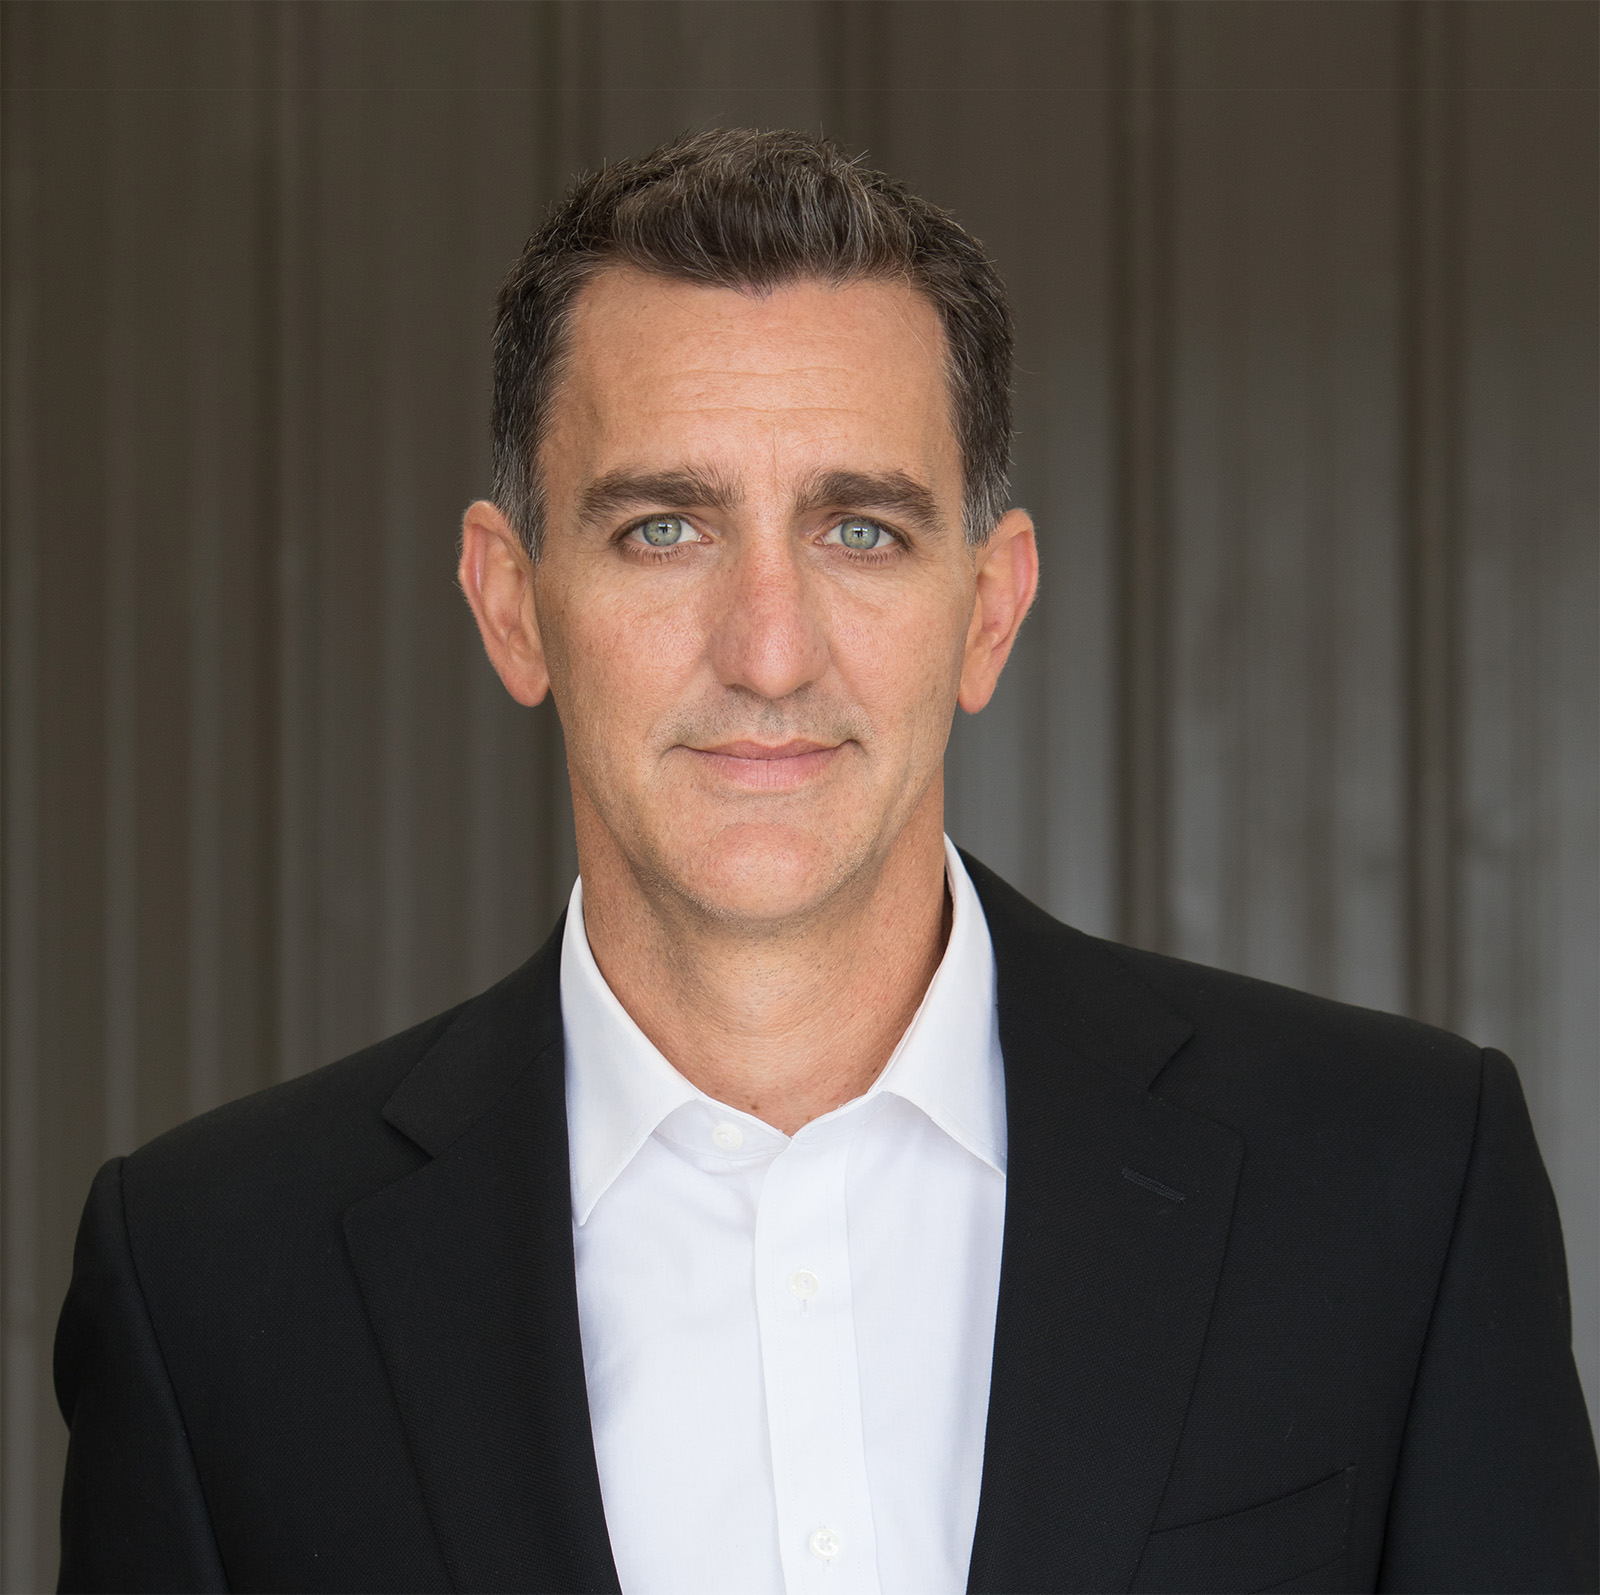 Cart.com Appoints eCommerce and Retail Tech Veteran Michael Svatek as Chief Product Officer